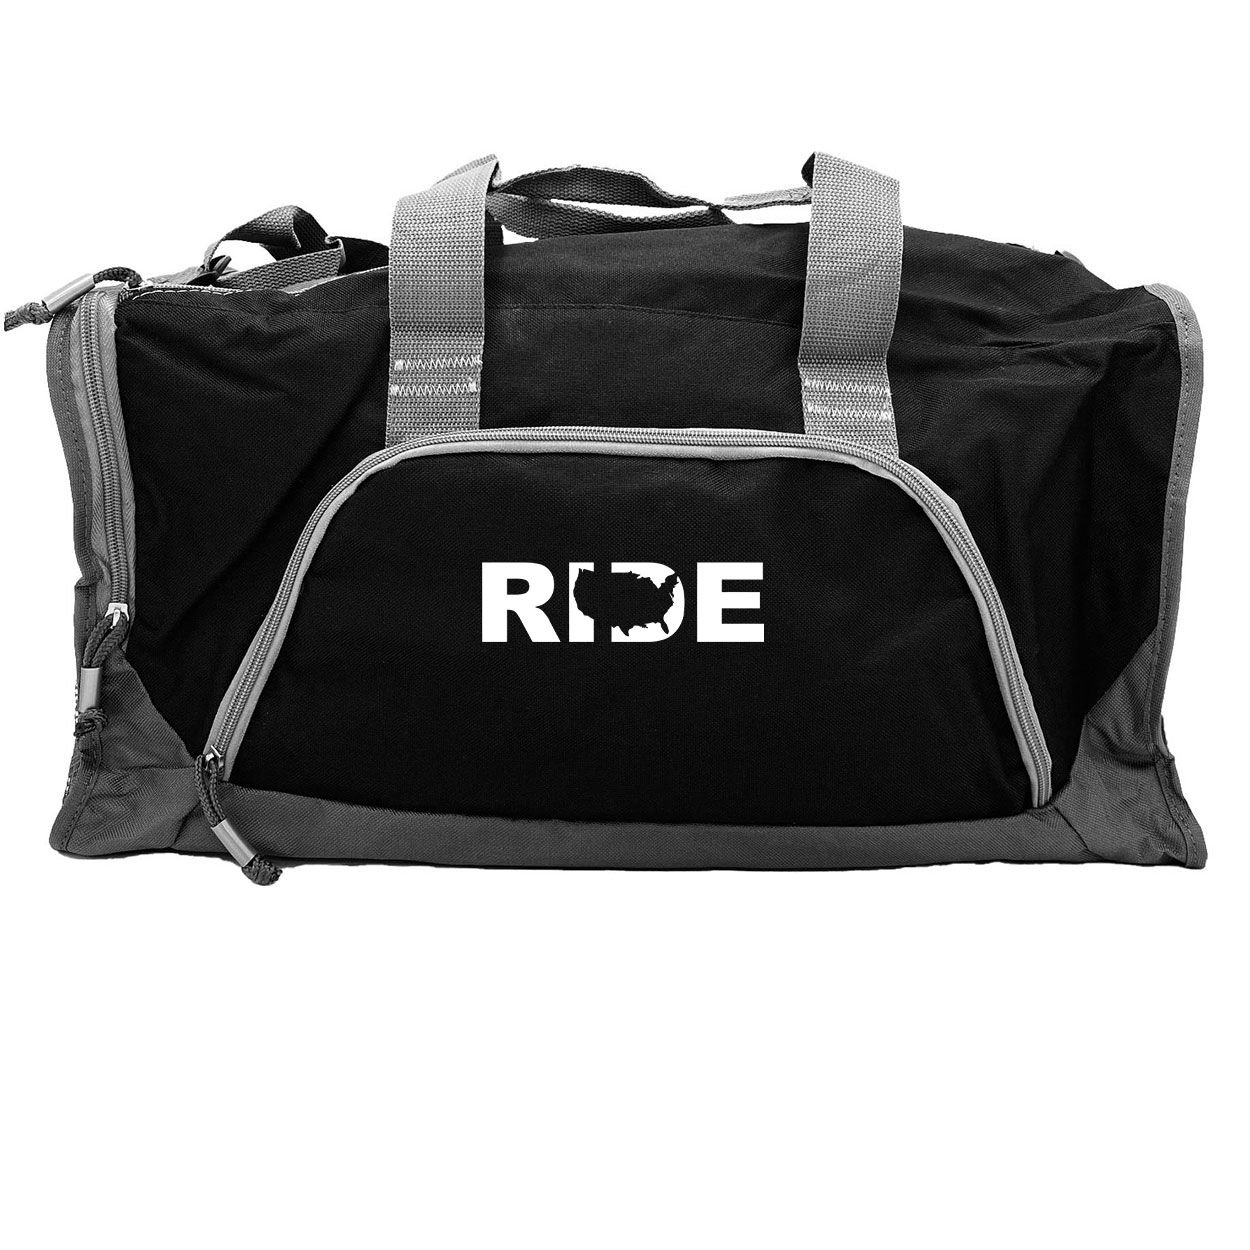 Ride United States Classic Rangeley Sport Duffel Bag Black (White Logo)